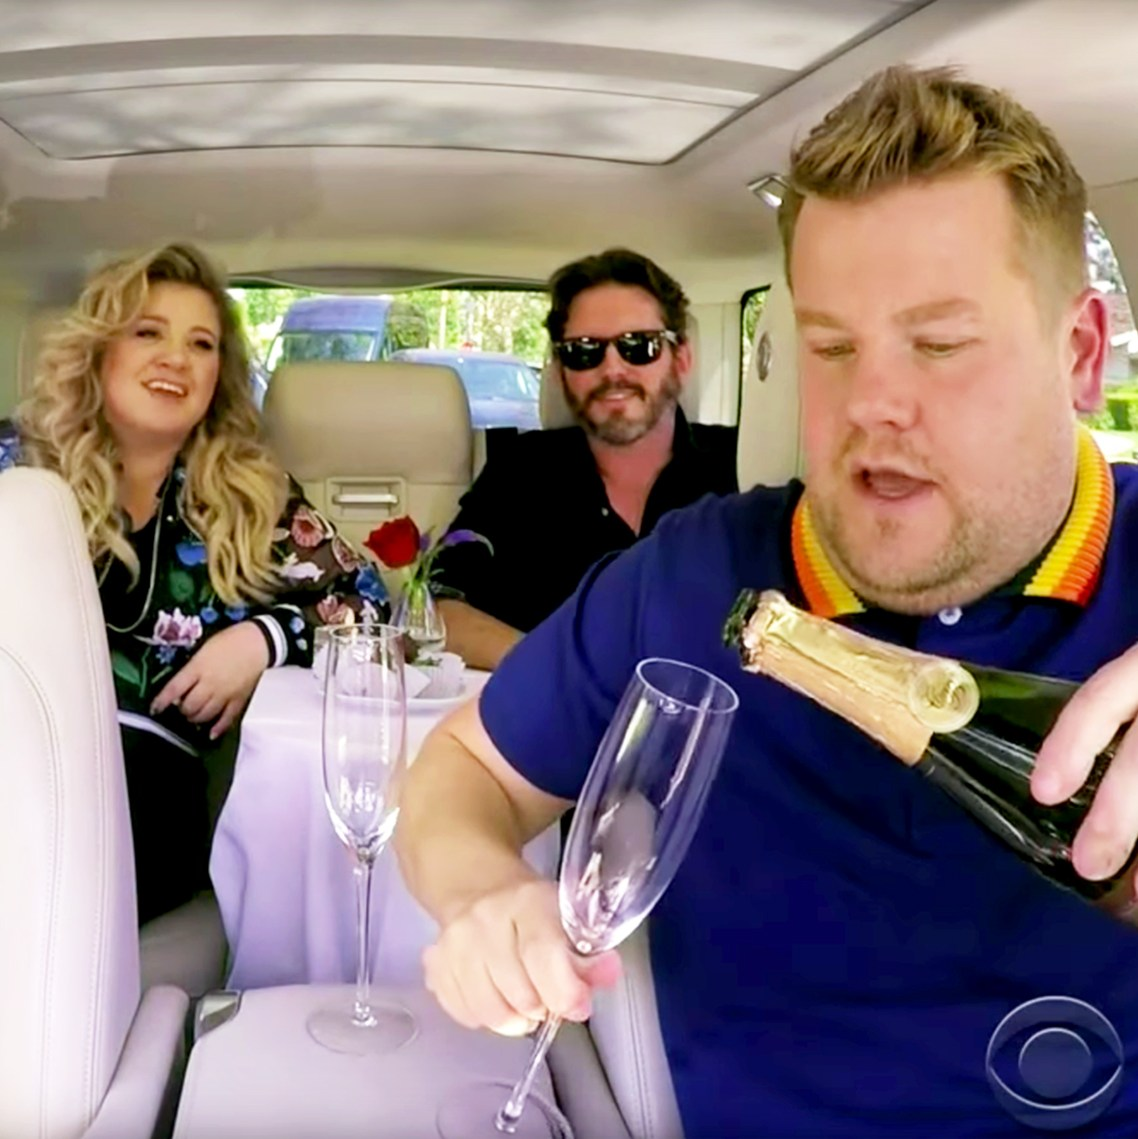 Kelly Clarkson and Brandon Blackstock during Carpool Karaoke with James Corden during 'The Late Late Show with James Corden'